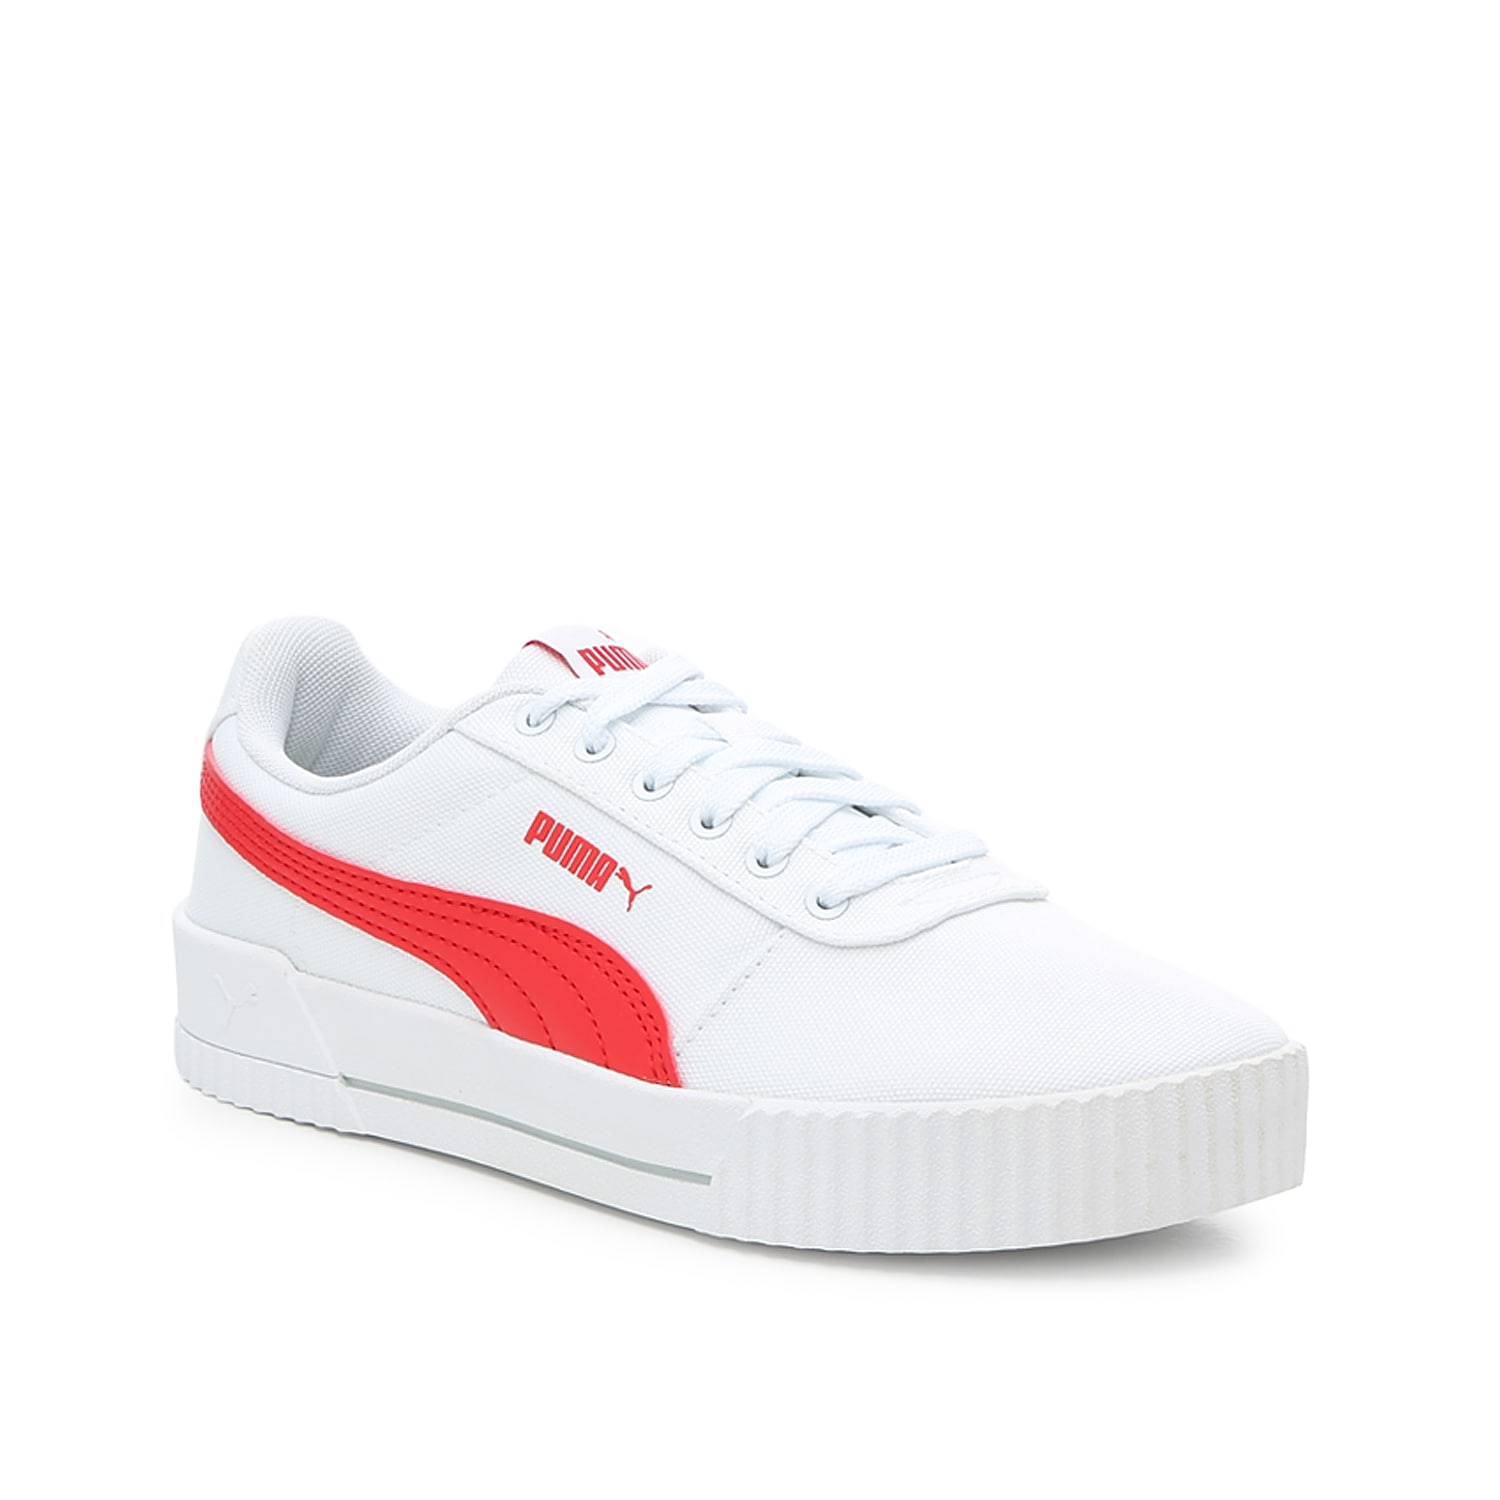 Grab everyone\\\'s attention in the Carina sneaker from Puma. These lace-ups feature a sporty aesthetic and contrasting panels for eye-caching appeal.